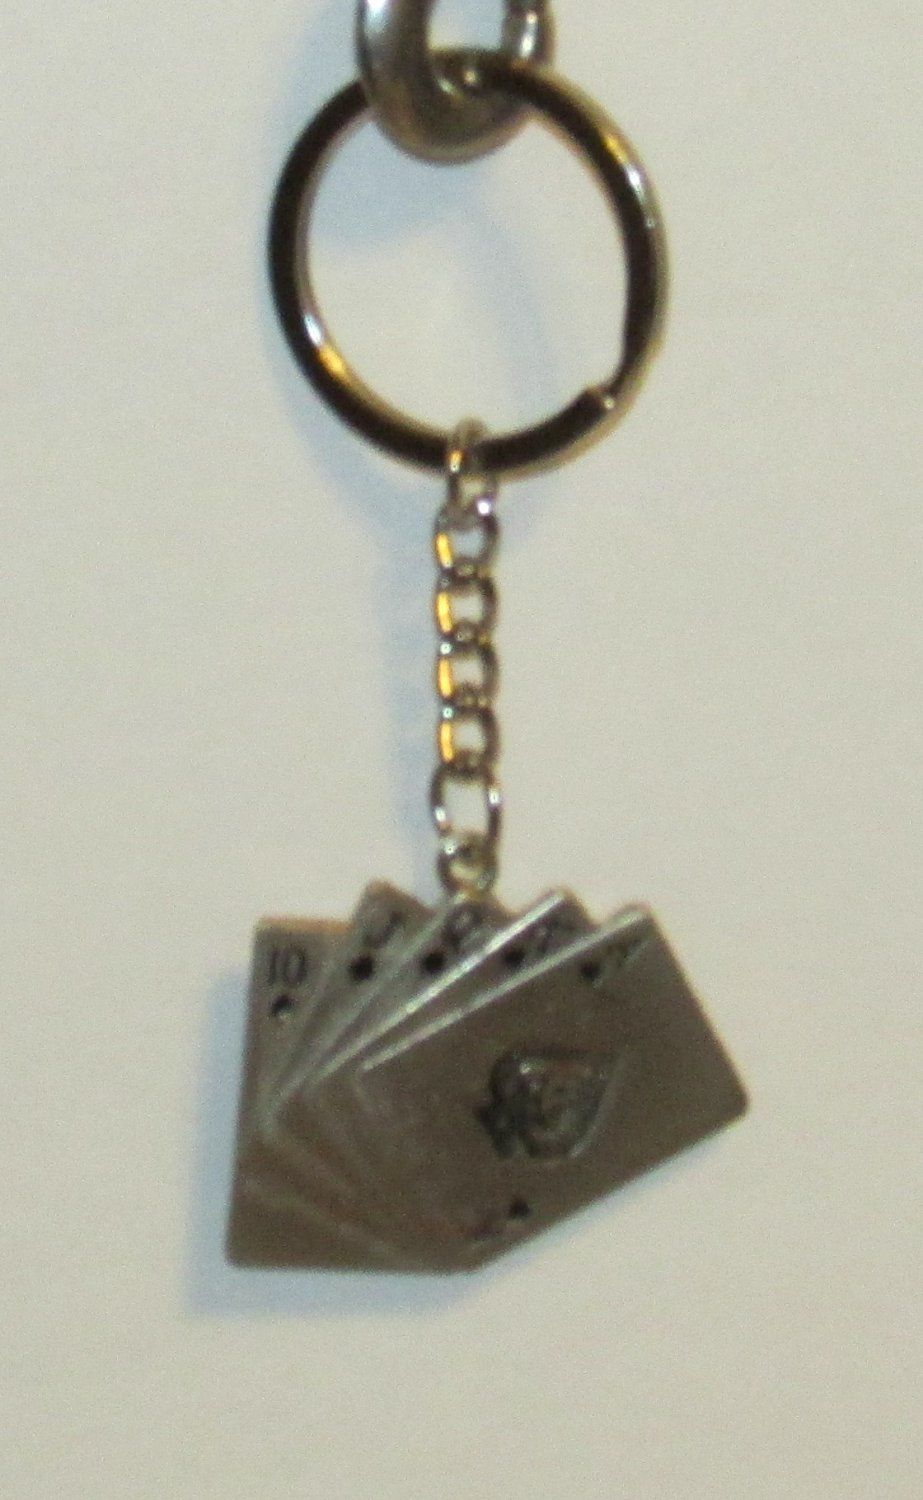 POKER SPADES Playing Cards KEYCHAIN Novelty KEY CHAIN Ring NEW